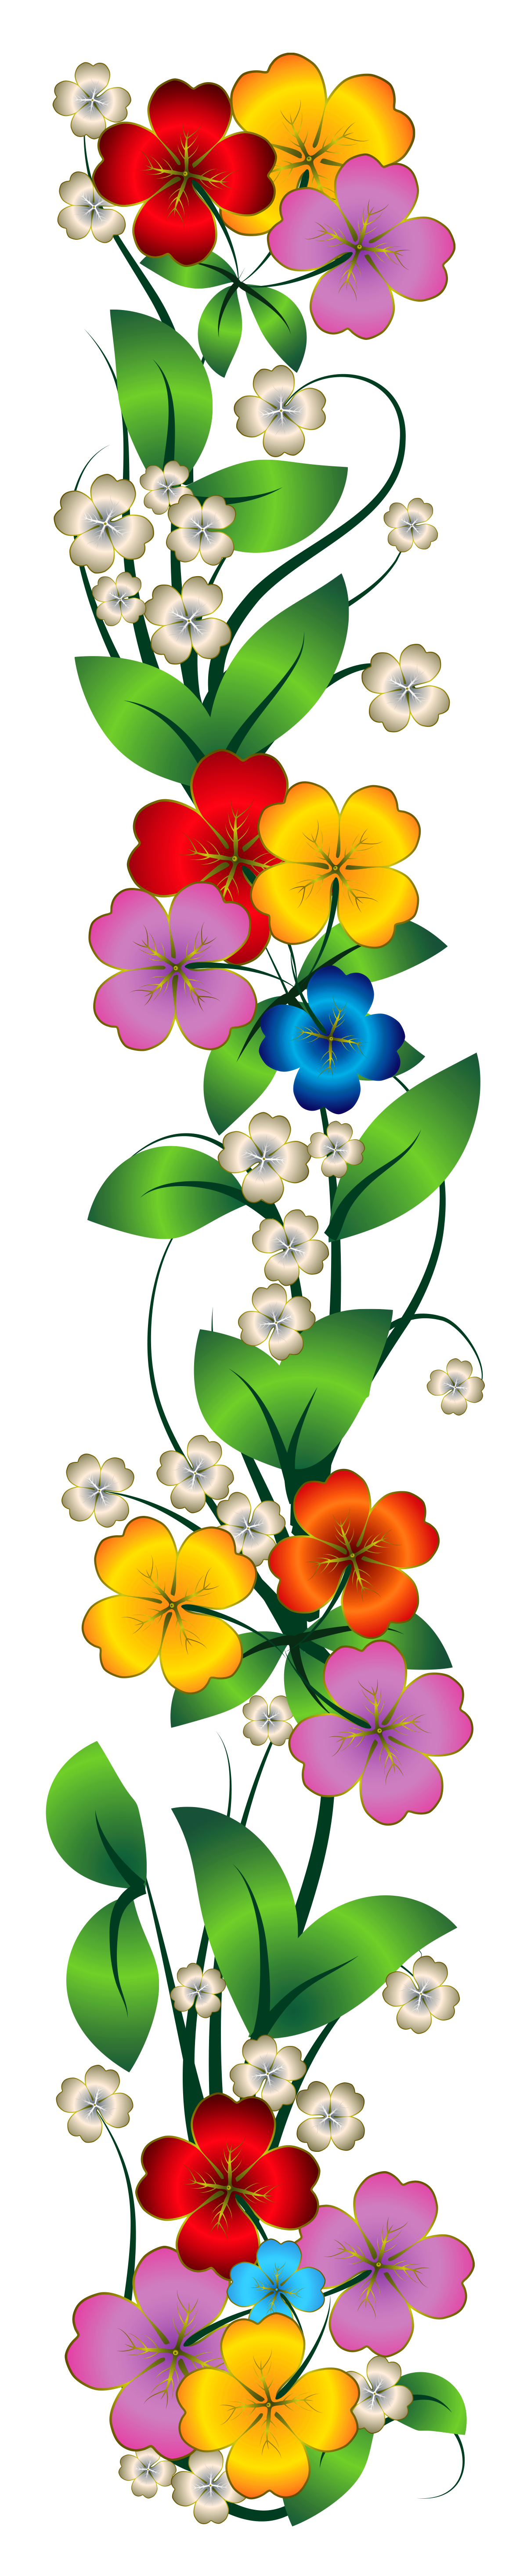 Decorative Flower Clipart.